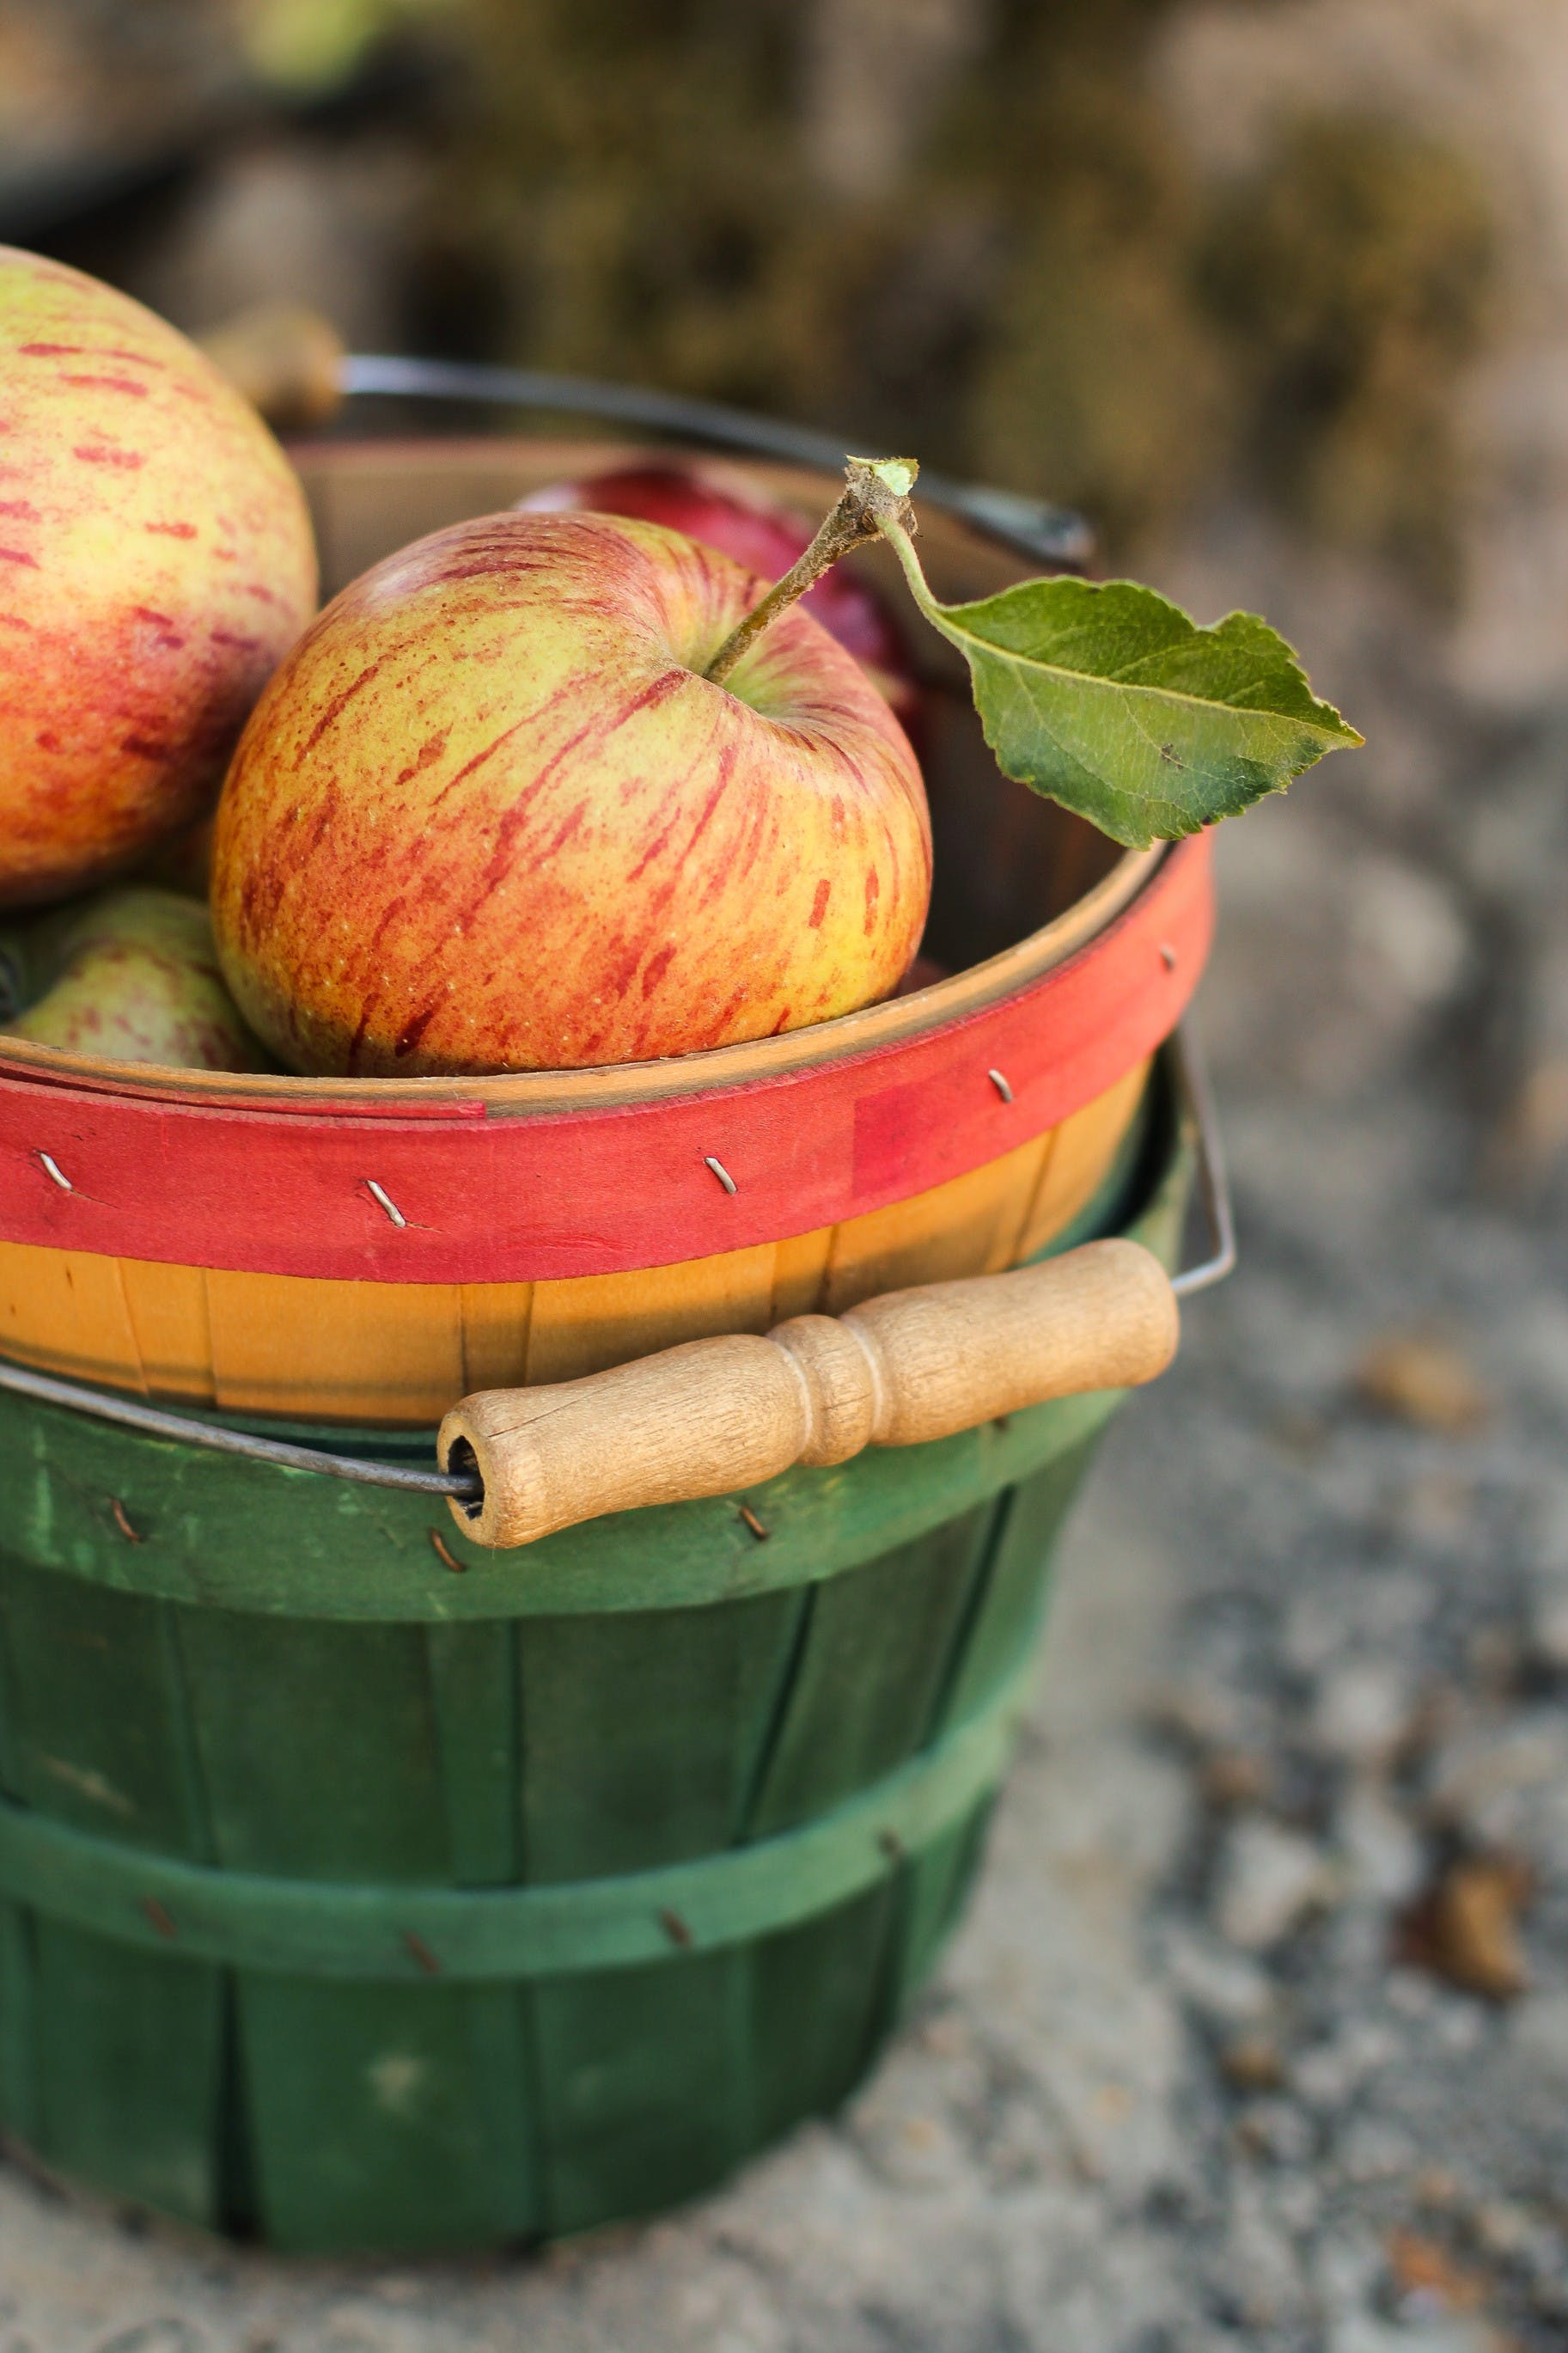 Shallow Focus Photography of Two Ripe Apples on Basket